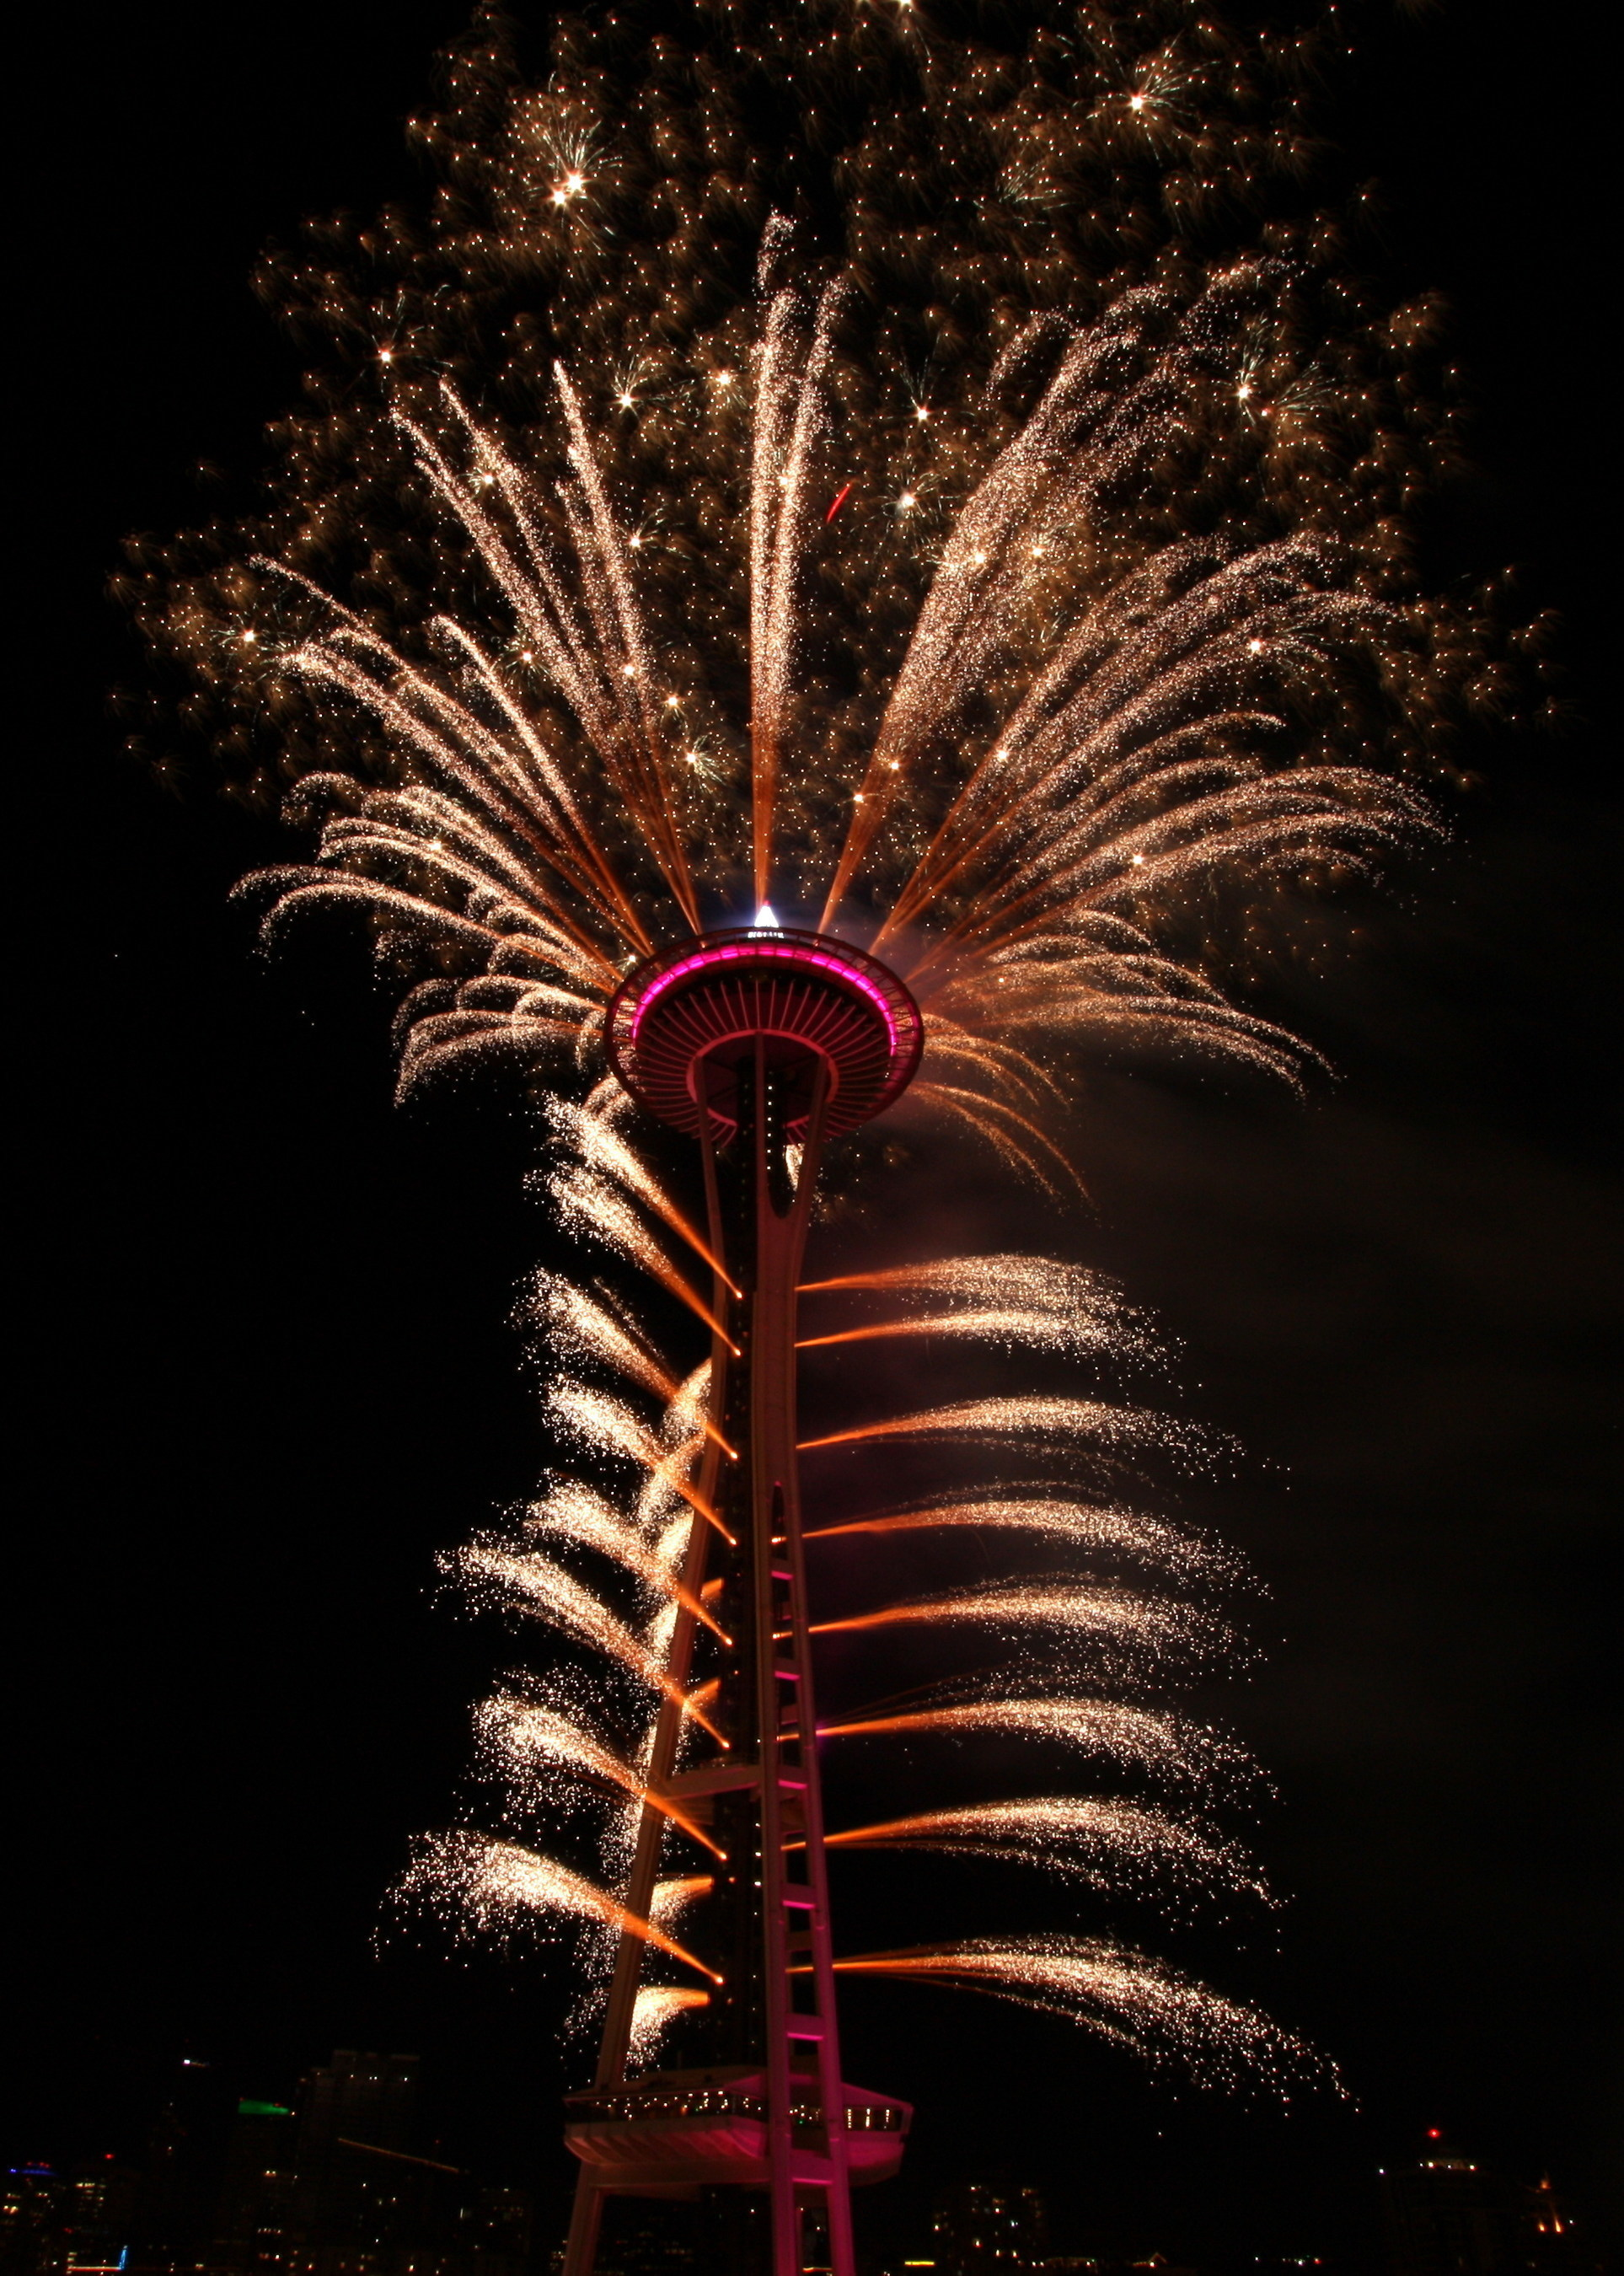 T-Mobile New Year's at the Needle to Light up the Seattle Sky with Even More Rockin' Fireworks to Welcome 2017